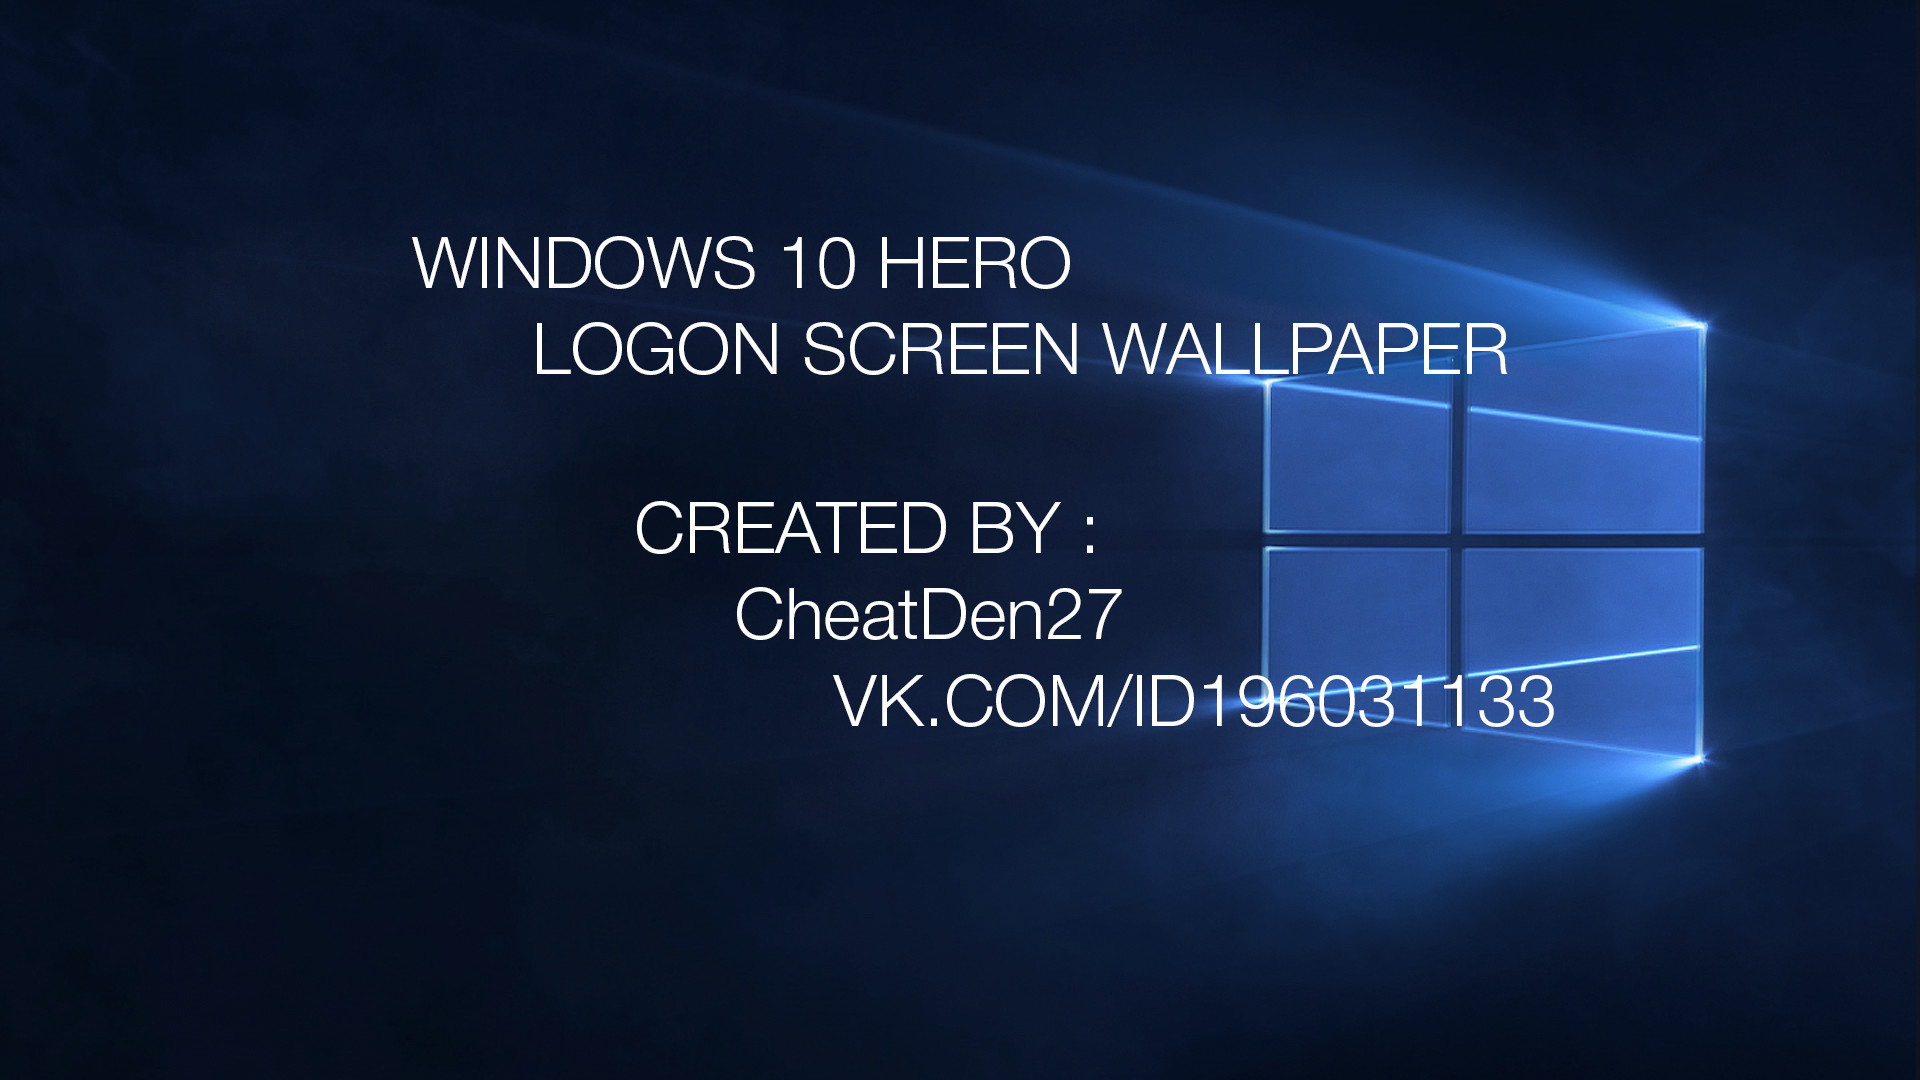 1920x1080 ... Windows 10 Hero Logon Screen Wallpaper by cheatden27